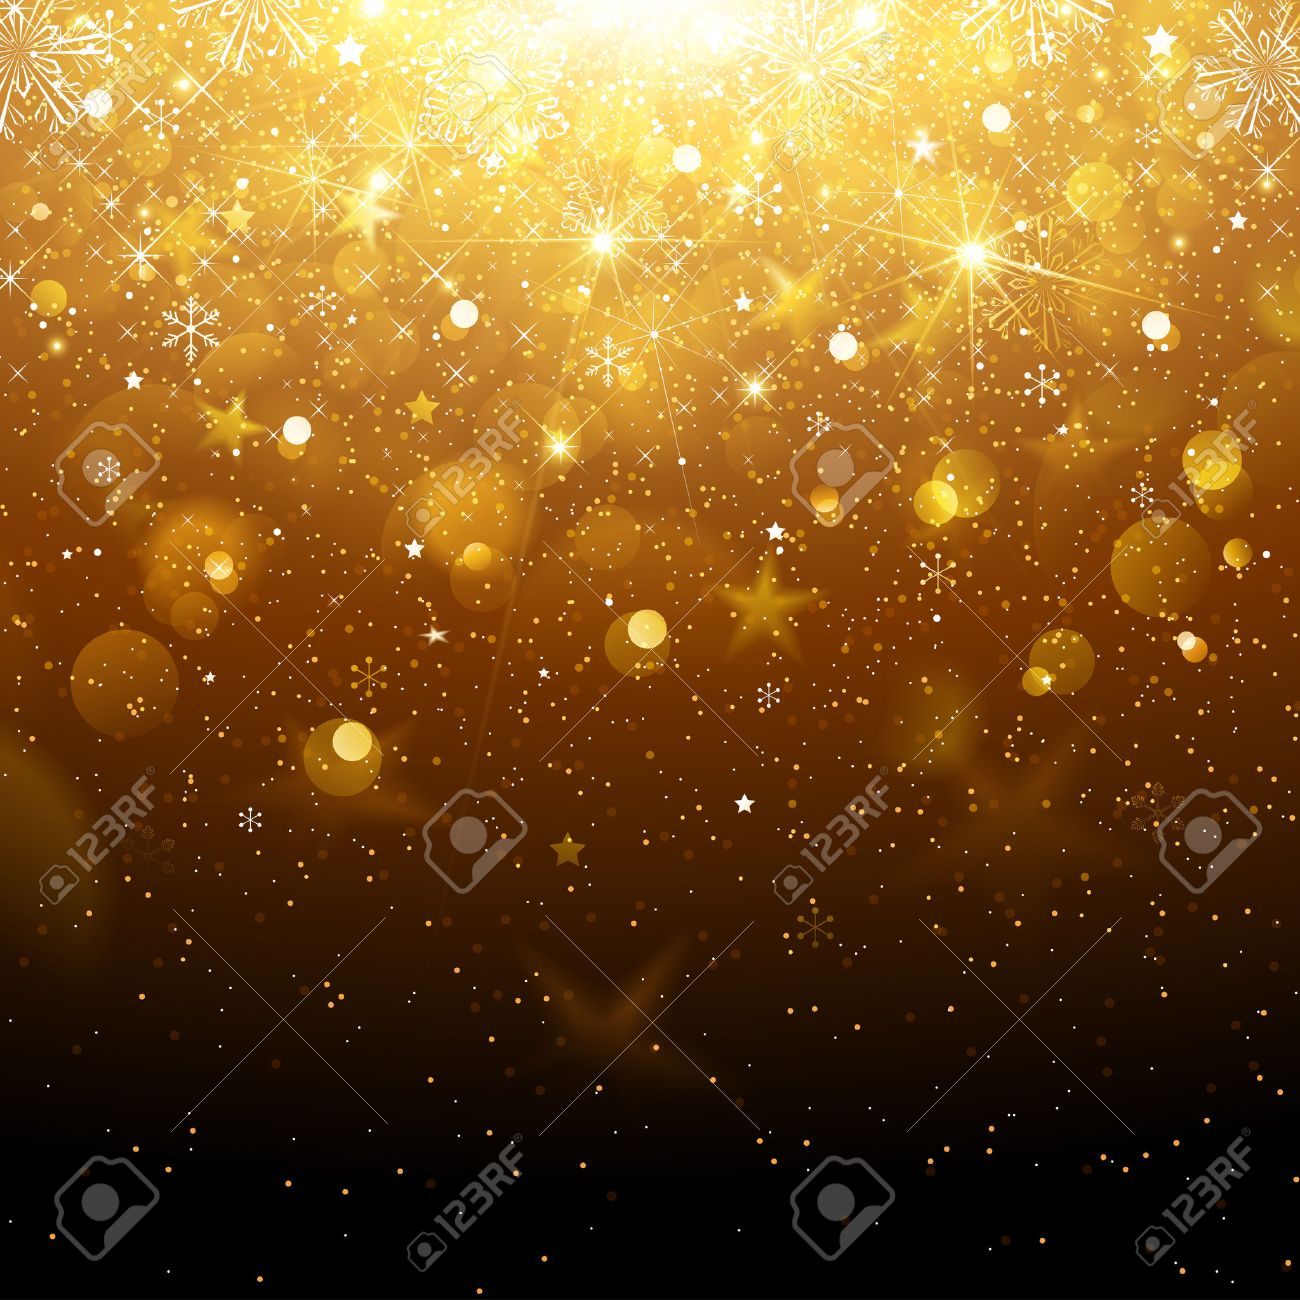 Christmas Gold Background with Snowflakes and Snow. Vector illustration Standard-Bild - 46976640